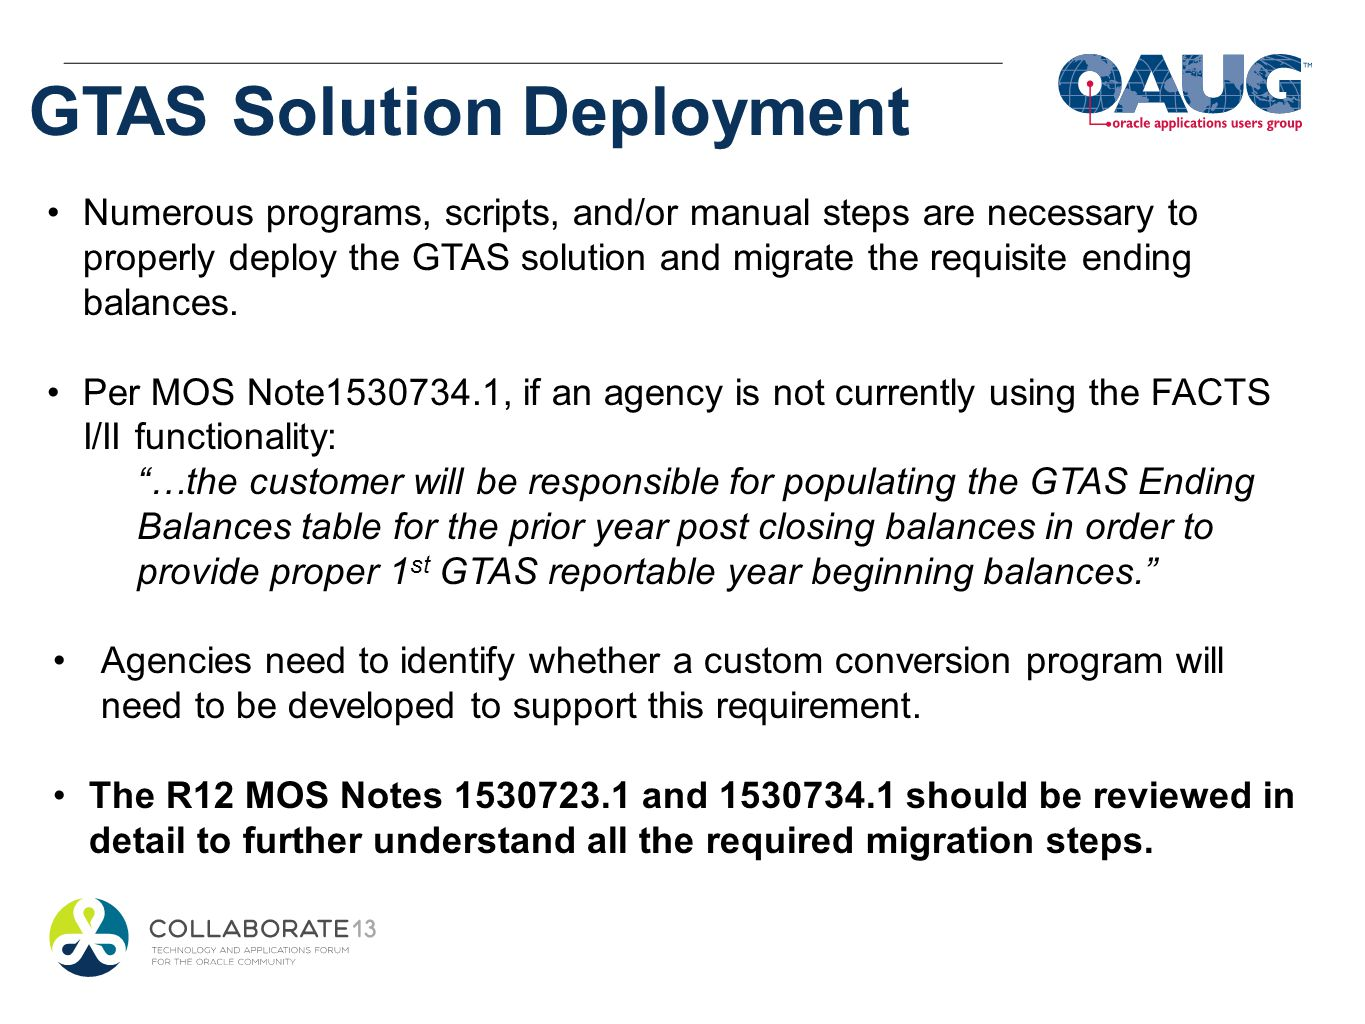 GTAS Solution Deployment Numerous programs, scripts, and/or manual steps are necessary to properly deploy the GTAS solution and migrate the requisite